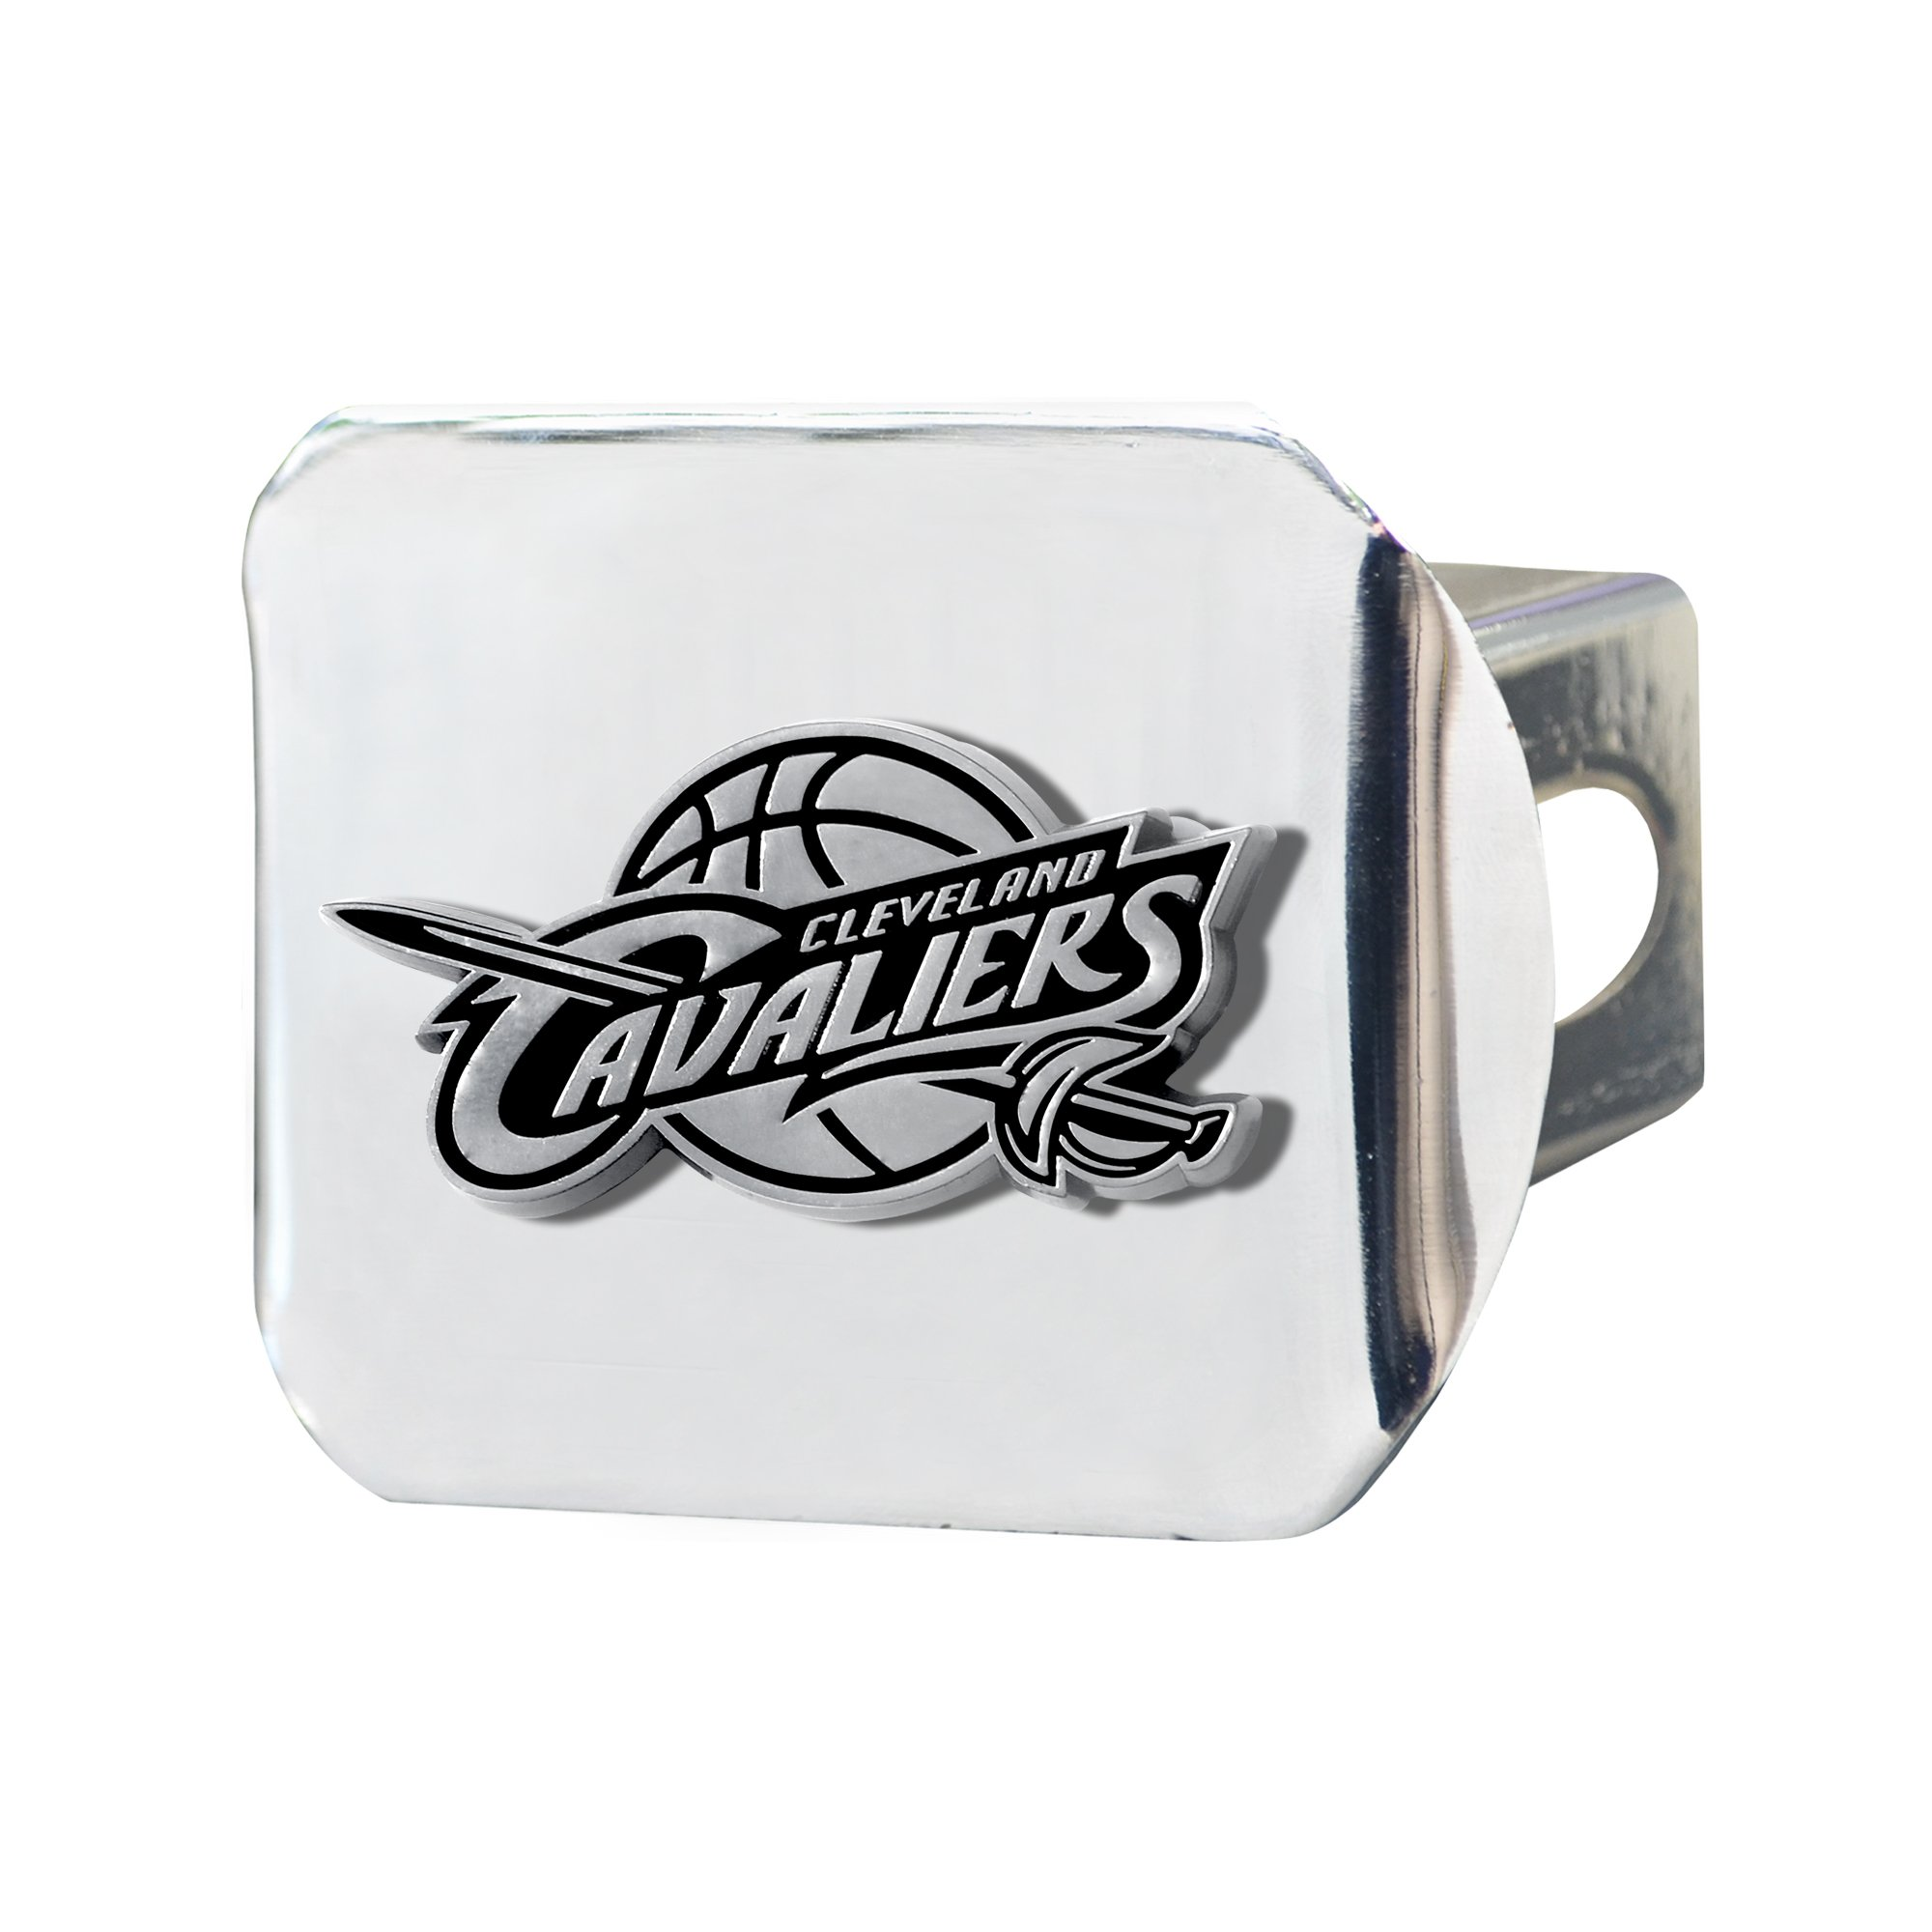 NBA Cleveland Cavaliers Hitch Cover, 4 1/2'' x 3 3/8''/Small, Black by Fanmats